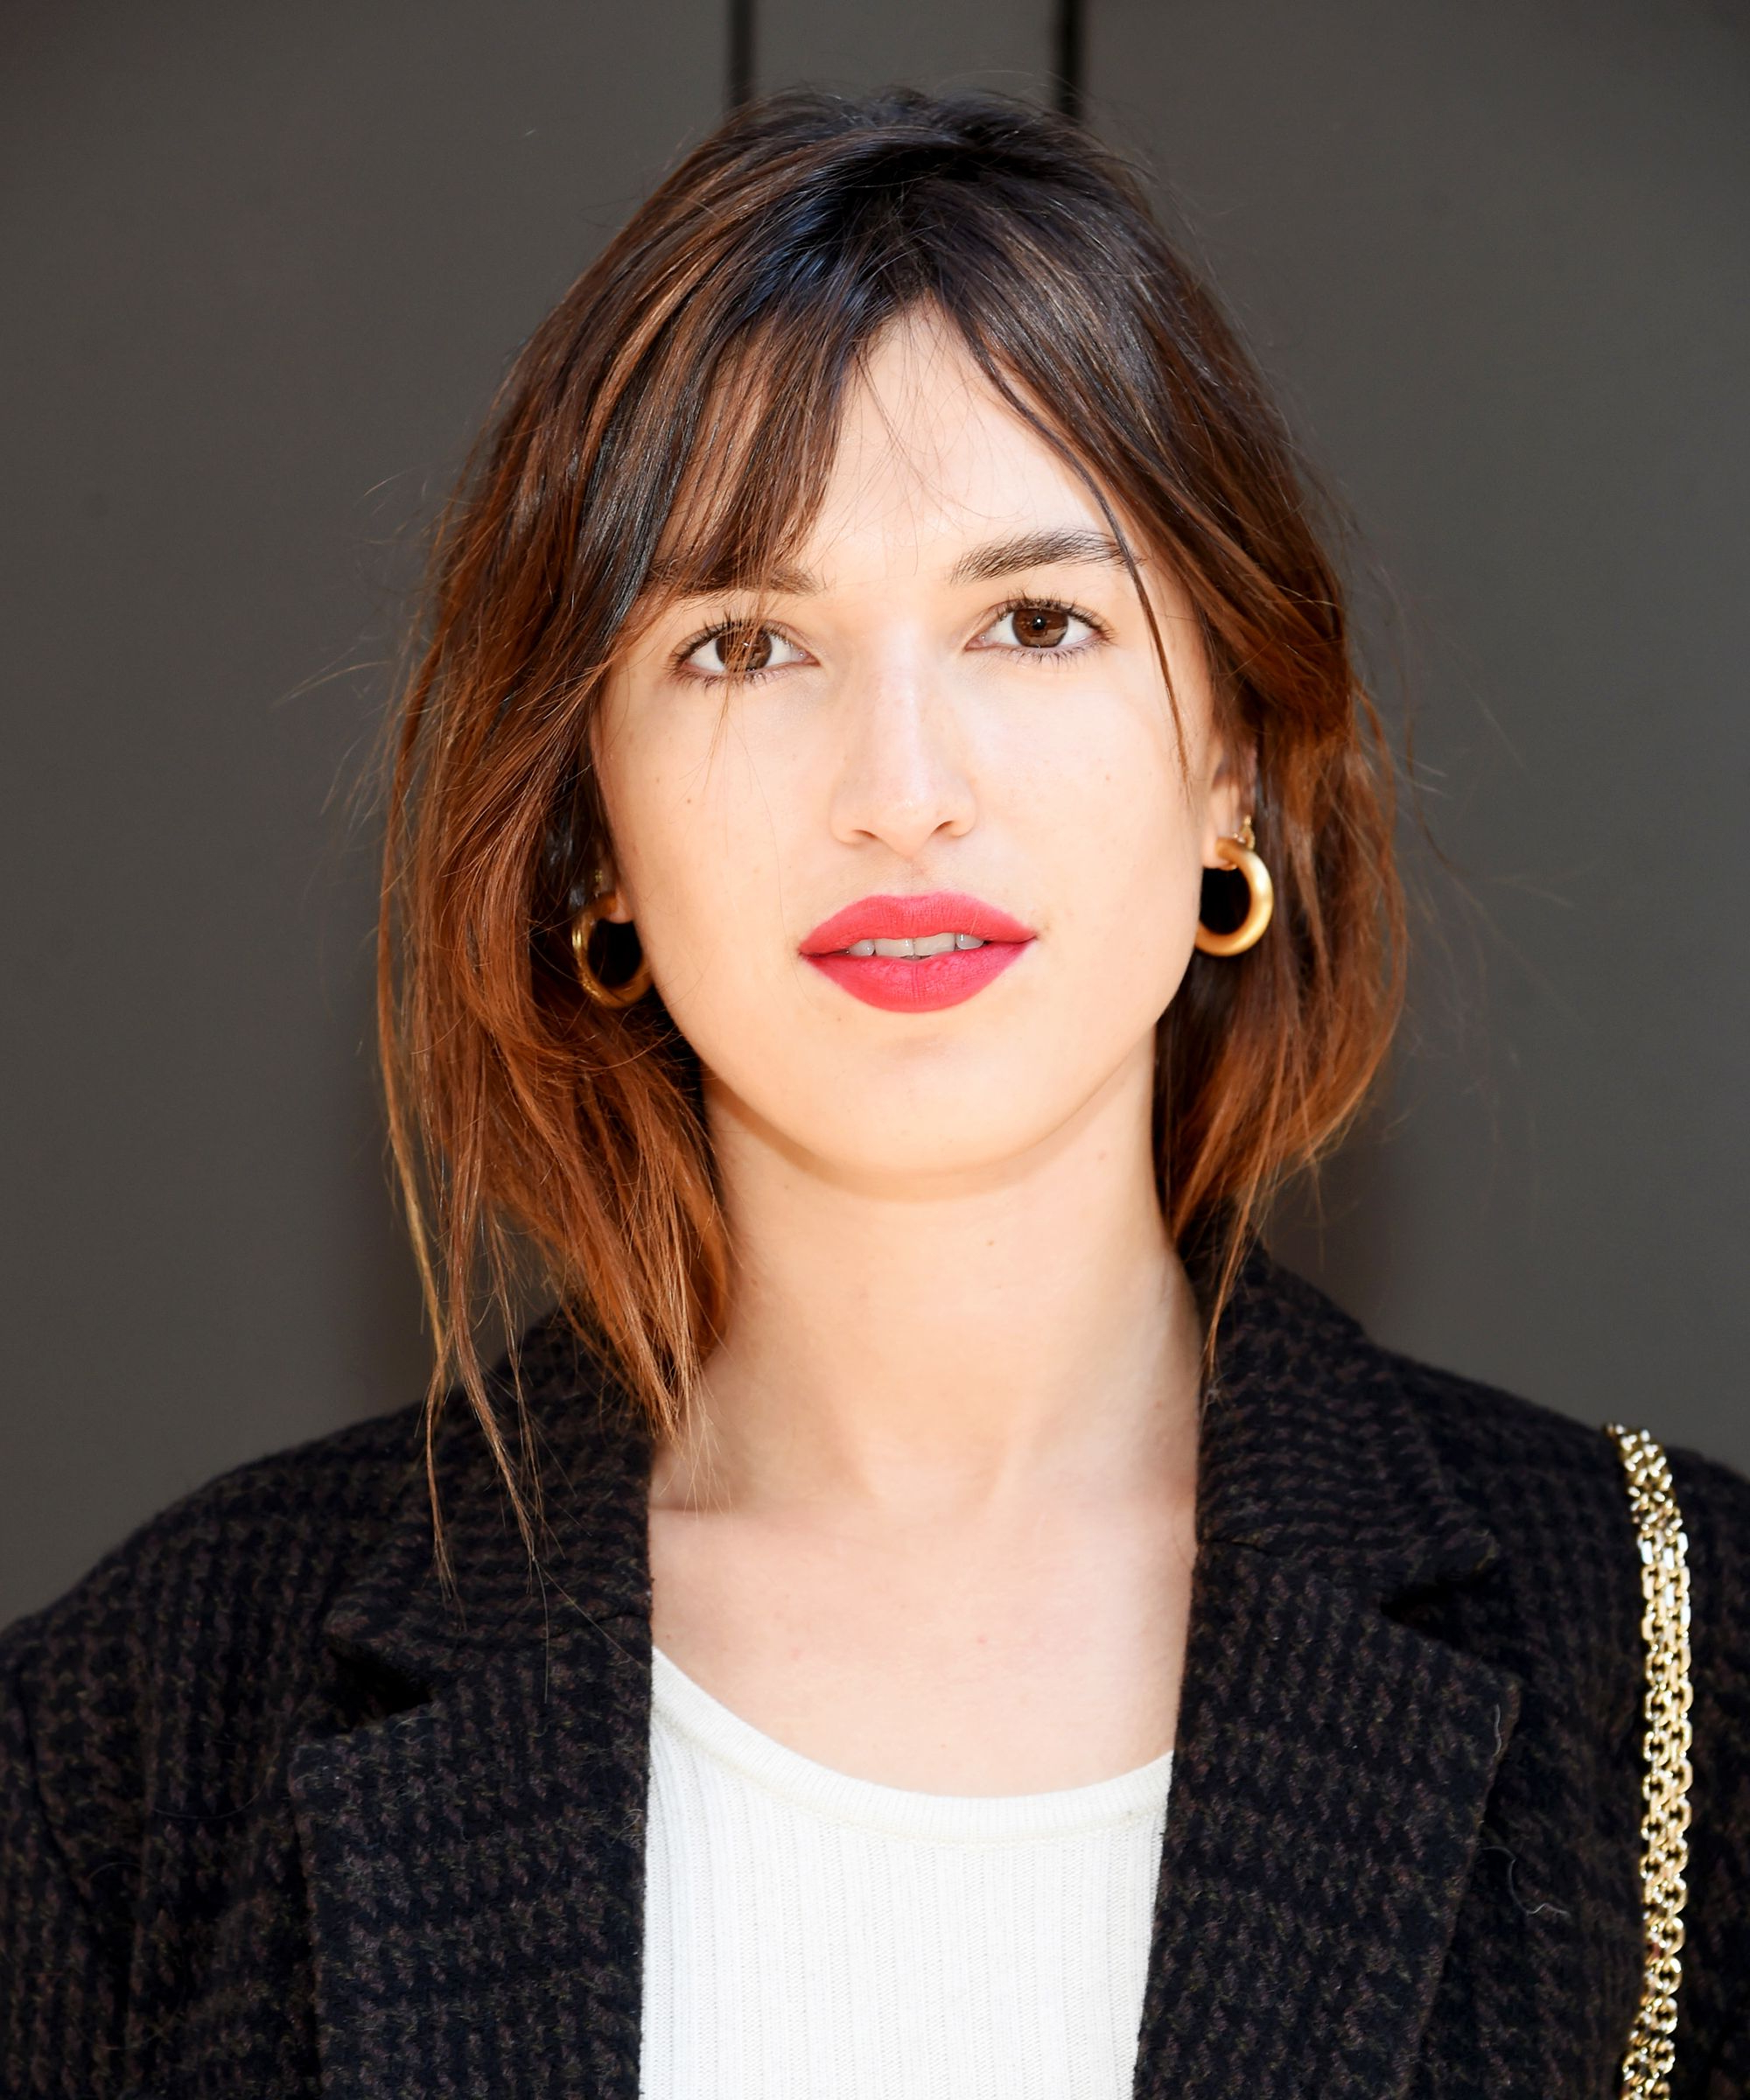 2018 Popular International Hair Trends Haircuts Photos In Edgy Short Hairstyles For Round Faces (View 17 of 25)